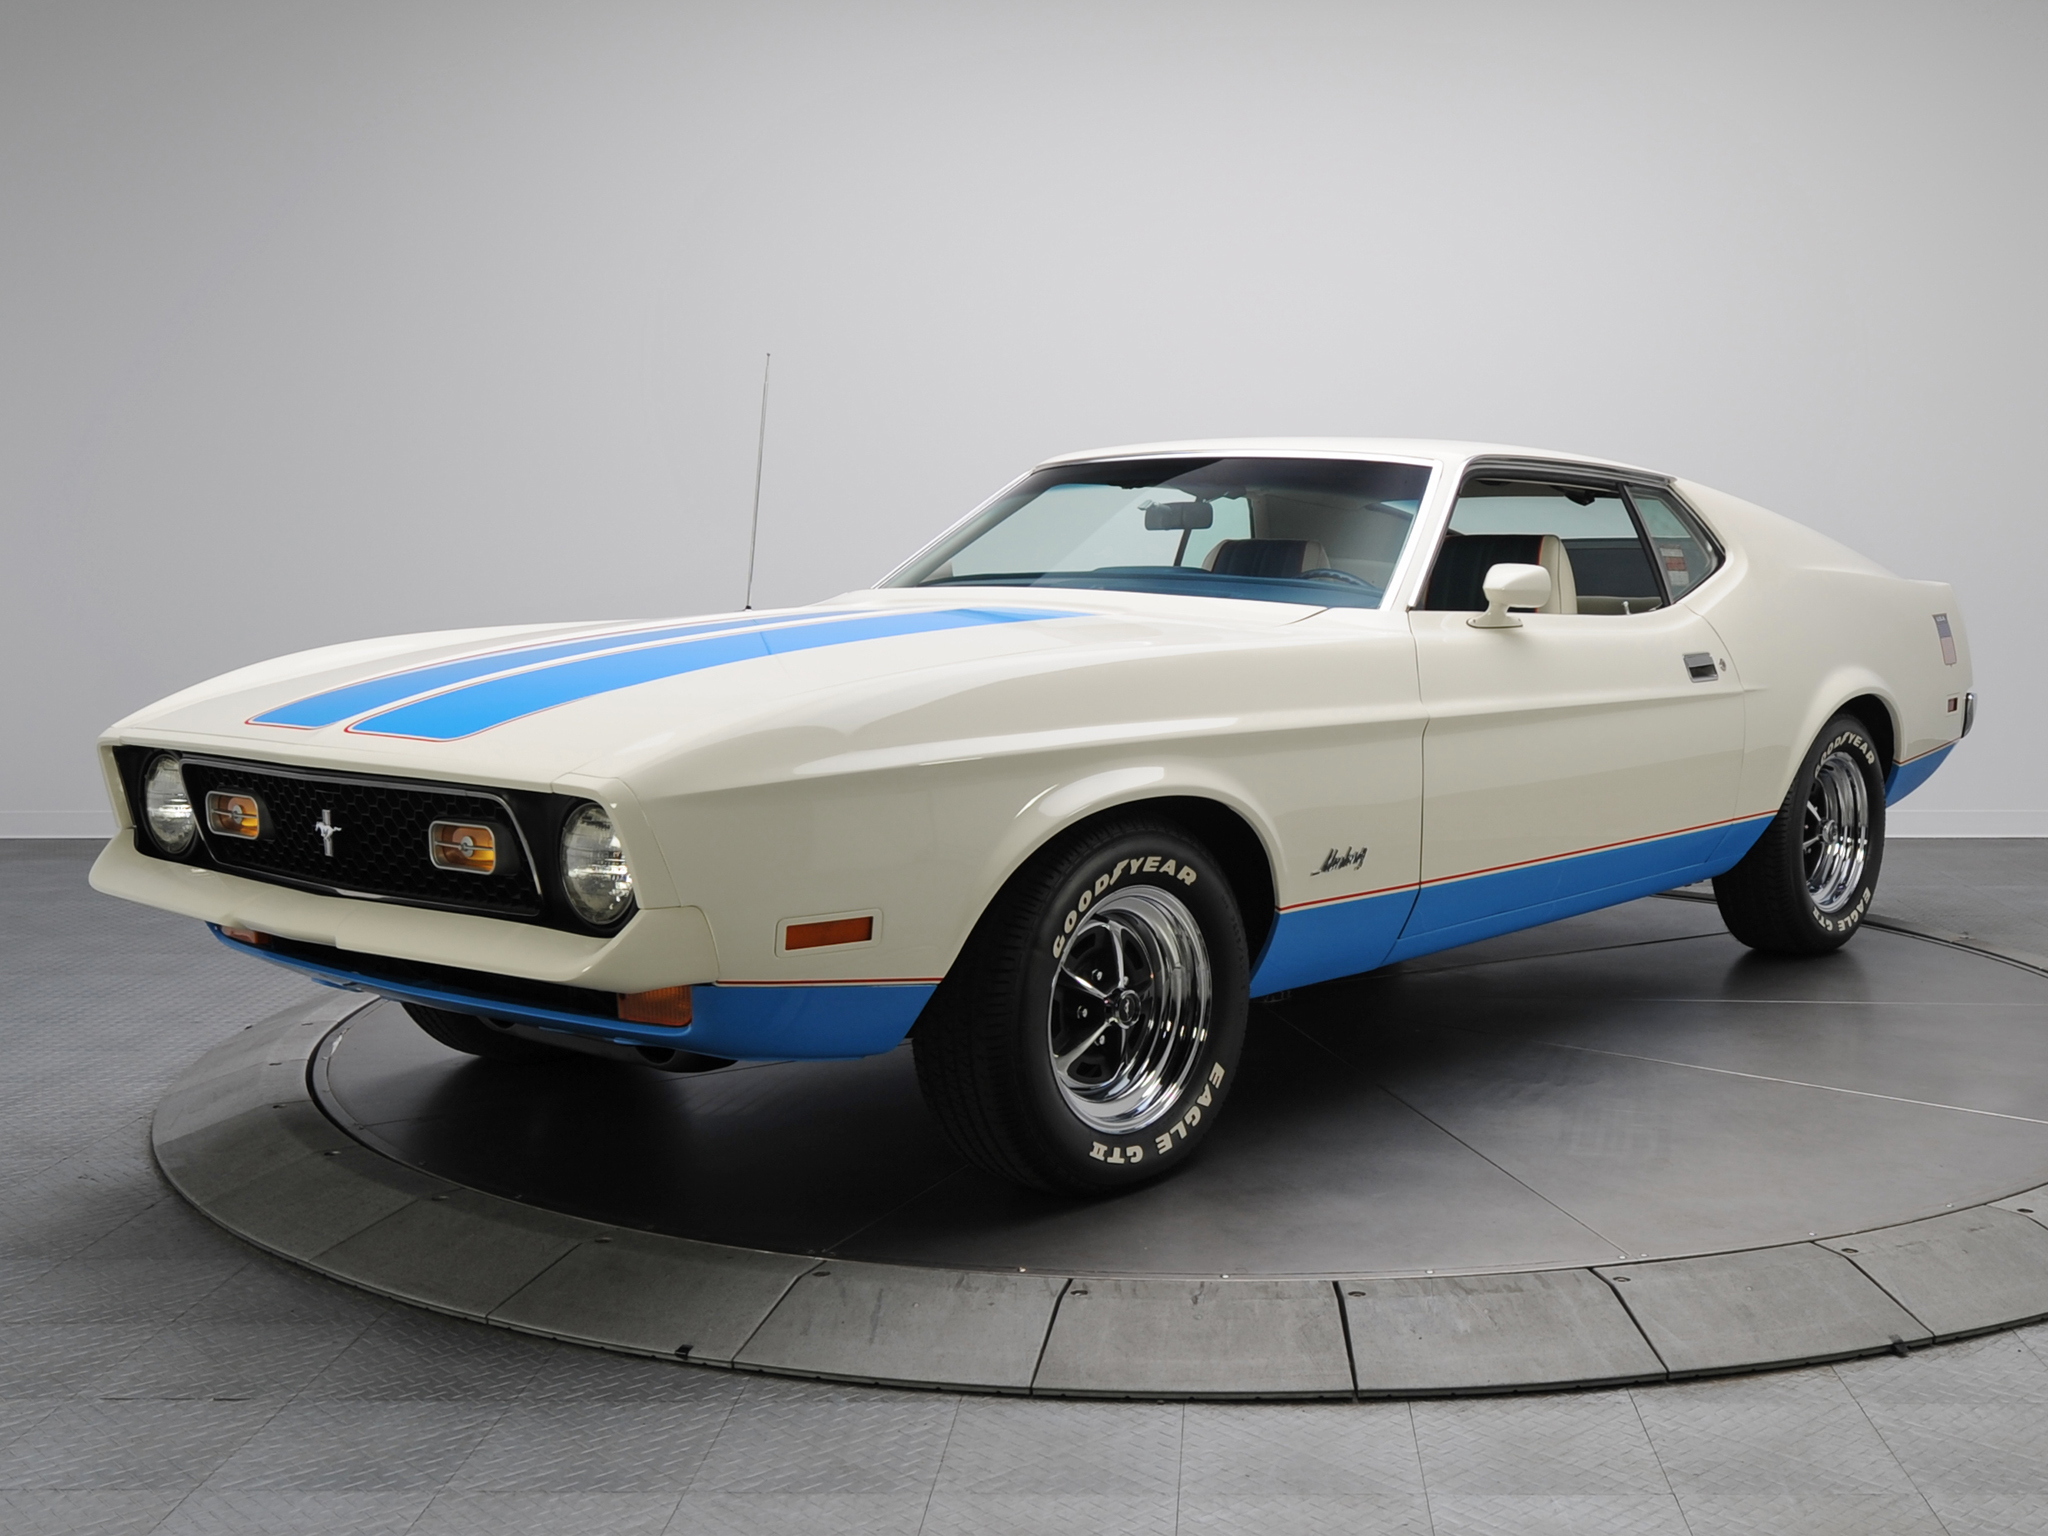 1972 ford mustang sprint sportsroof muscle classic g wallpaper 2048x1536 94006 wallpaperup